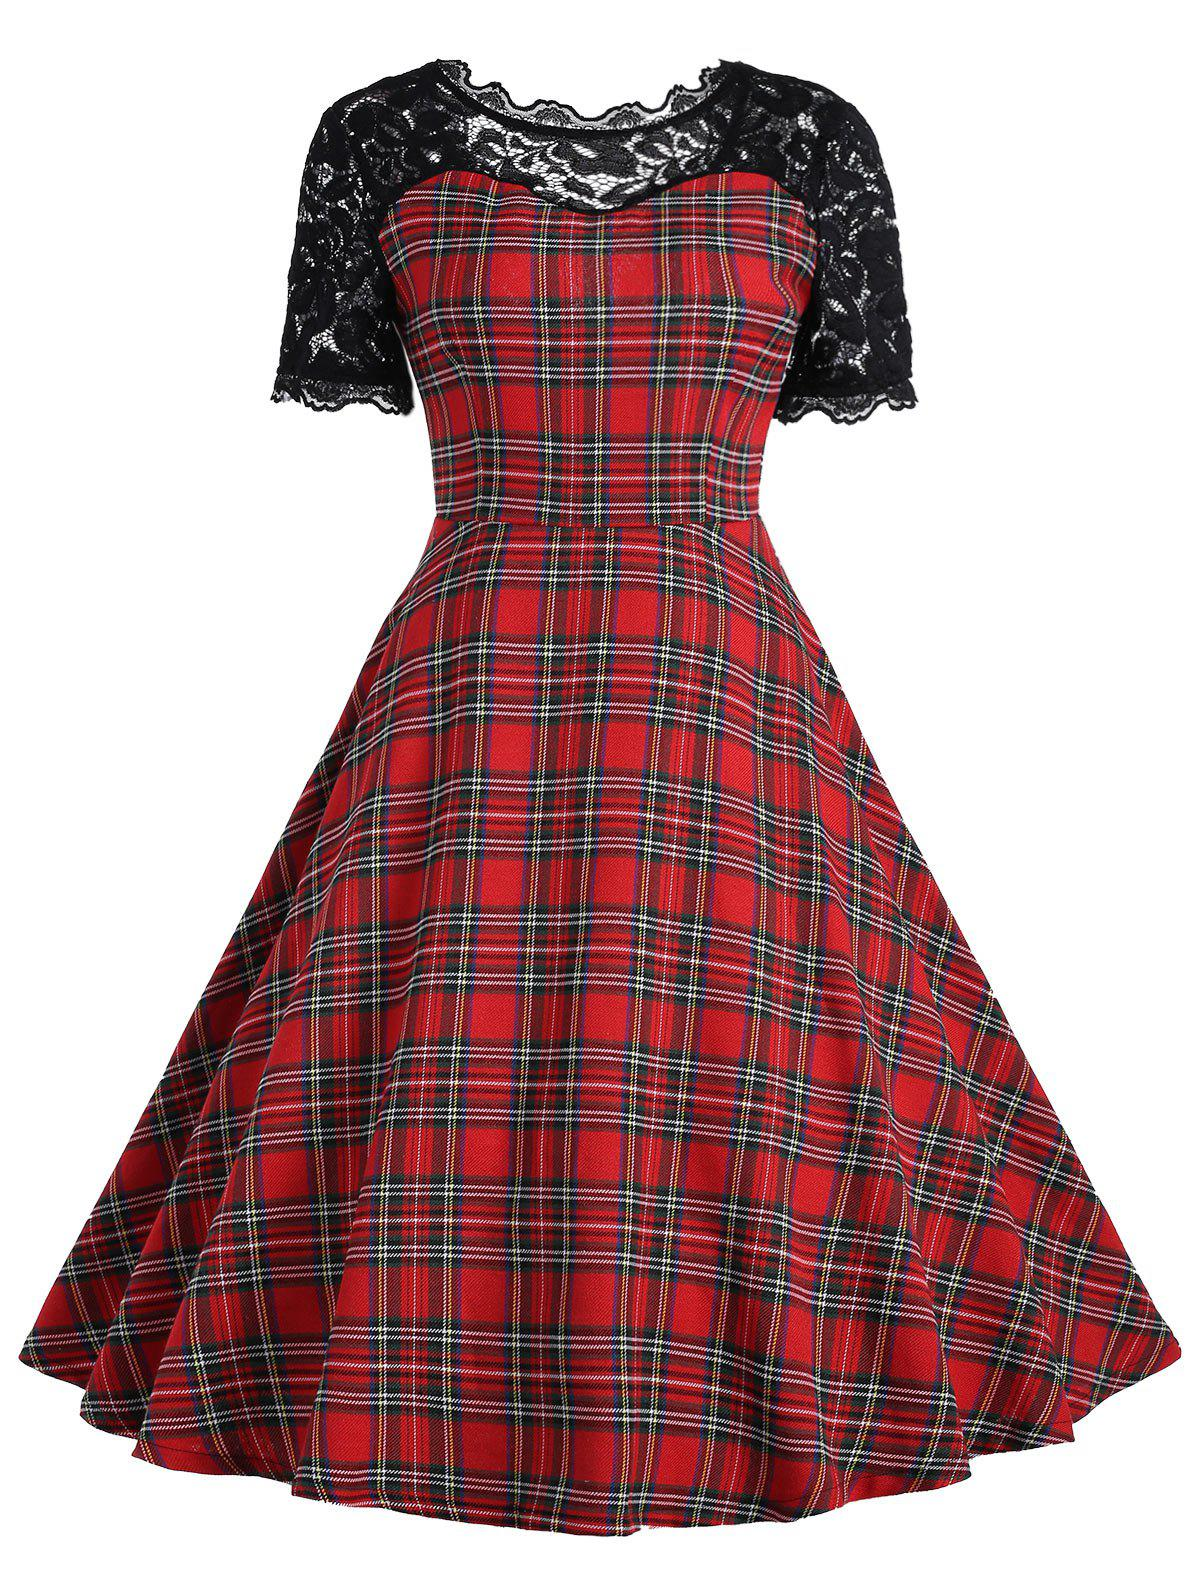 Lace Insert Tartan Vintage Dress - RED/BLACK 2XL